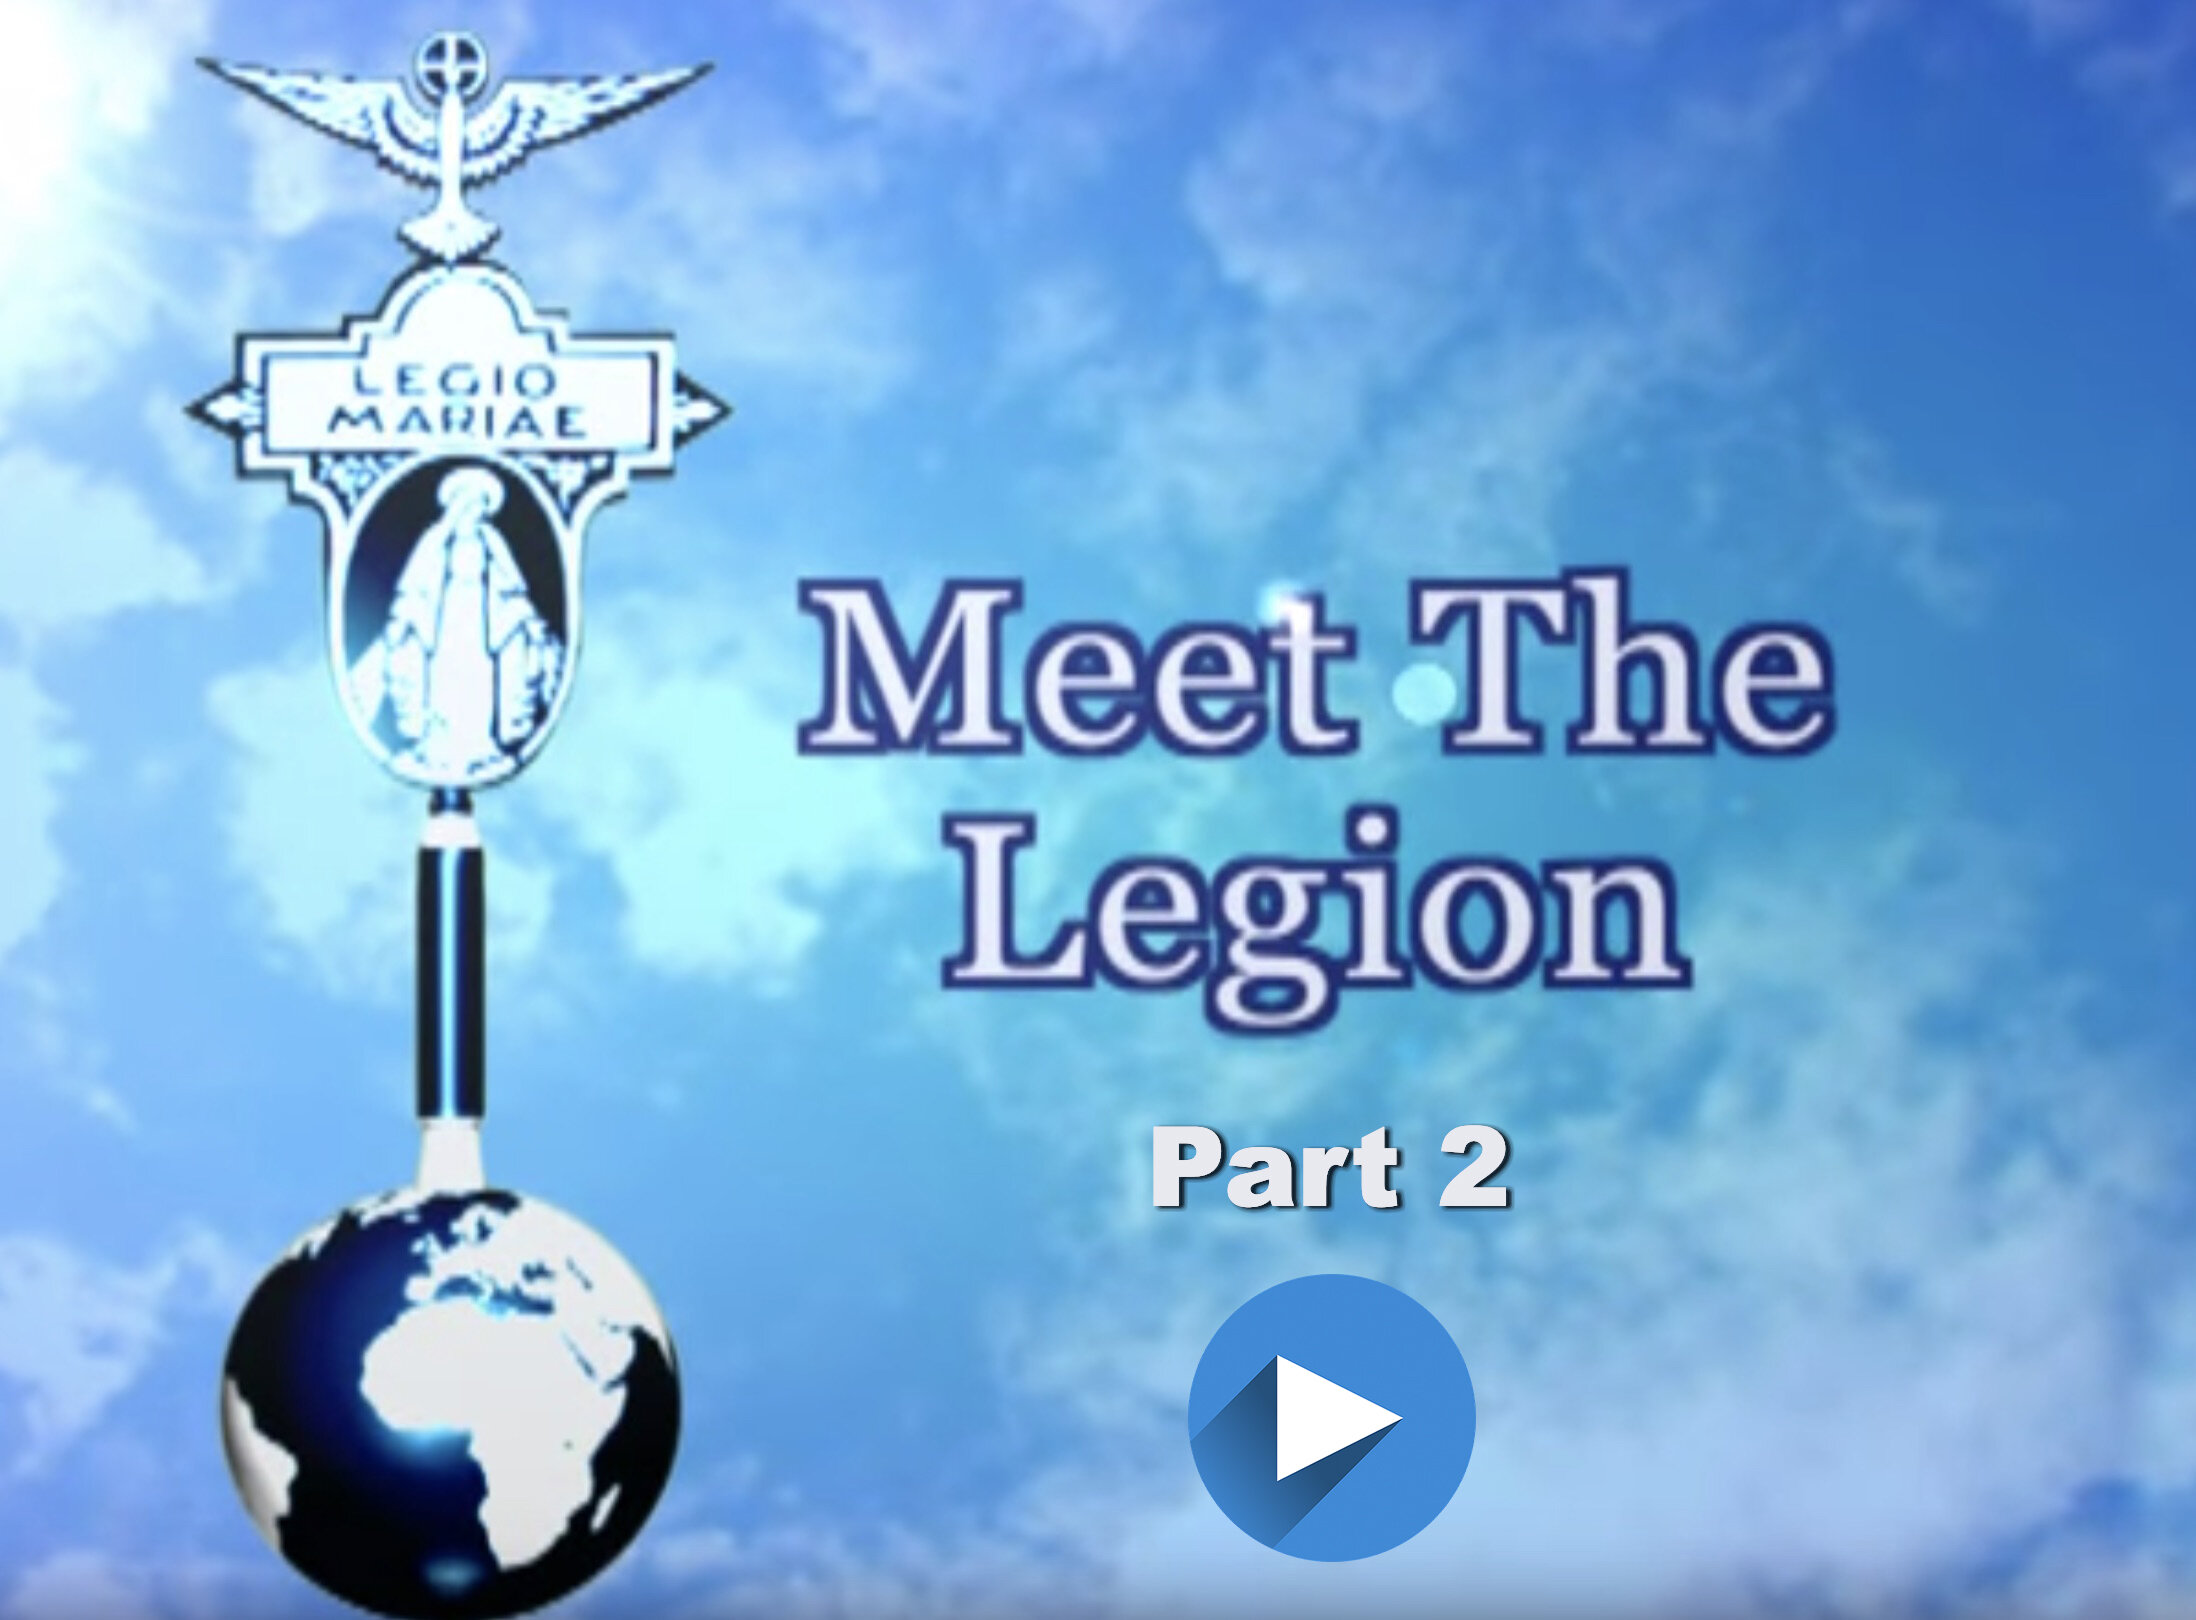 LEGION OF MARY VIDEO COVER with arrow PART 2.jpg